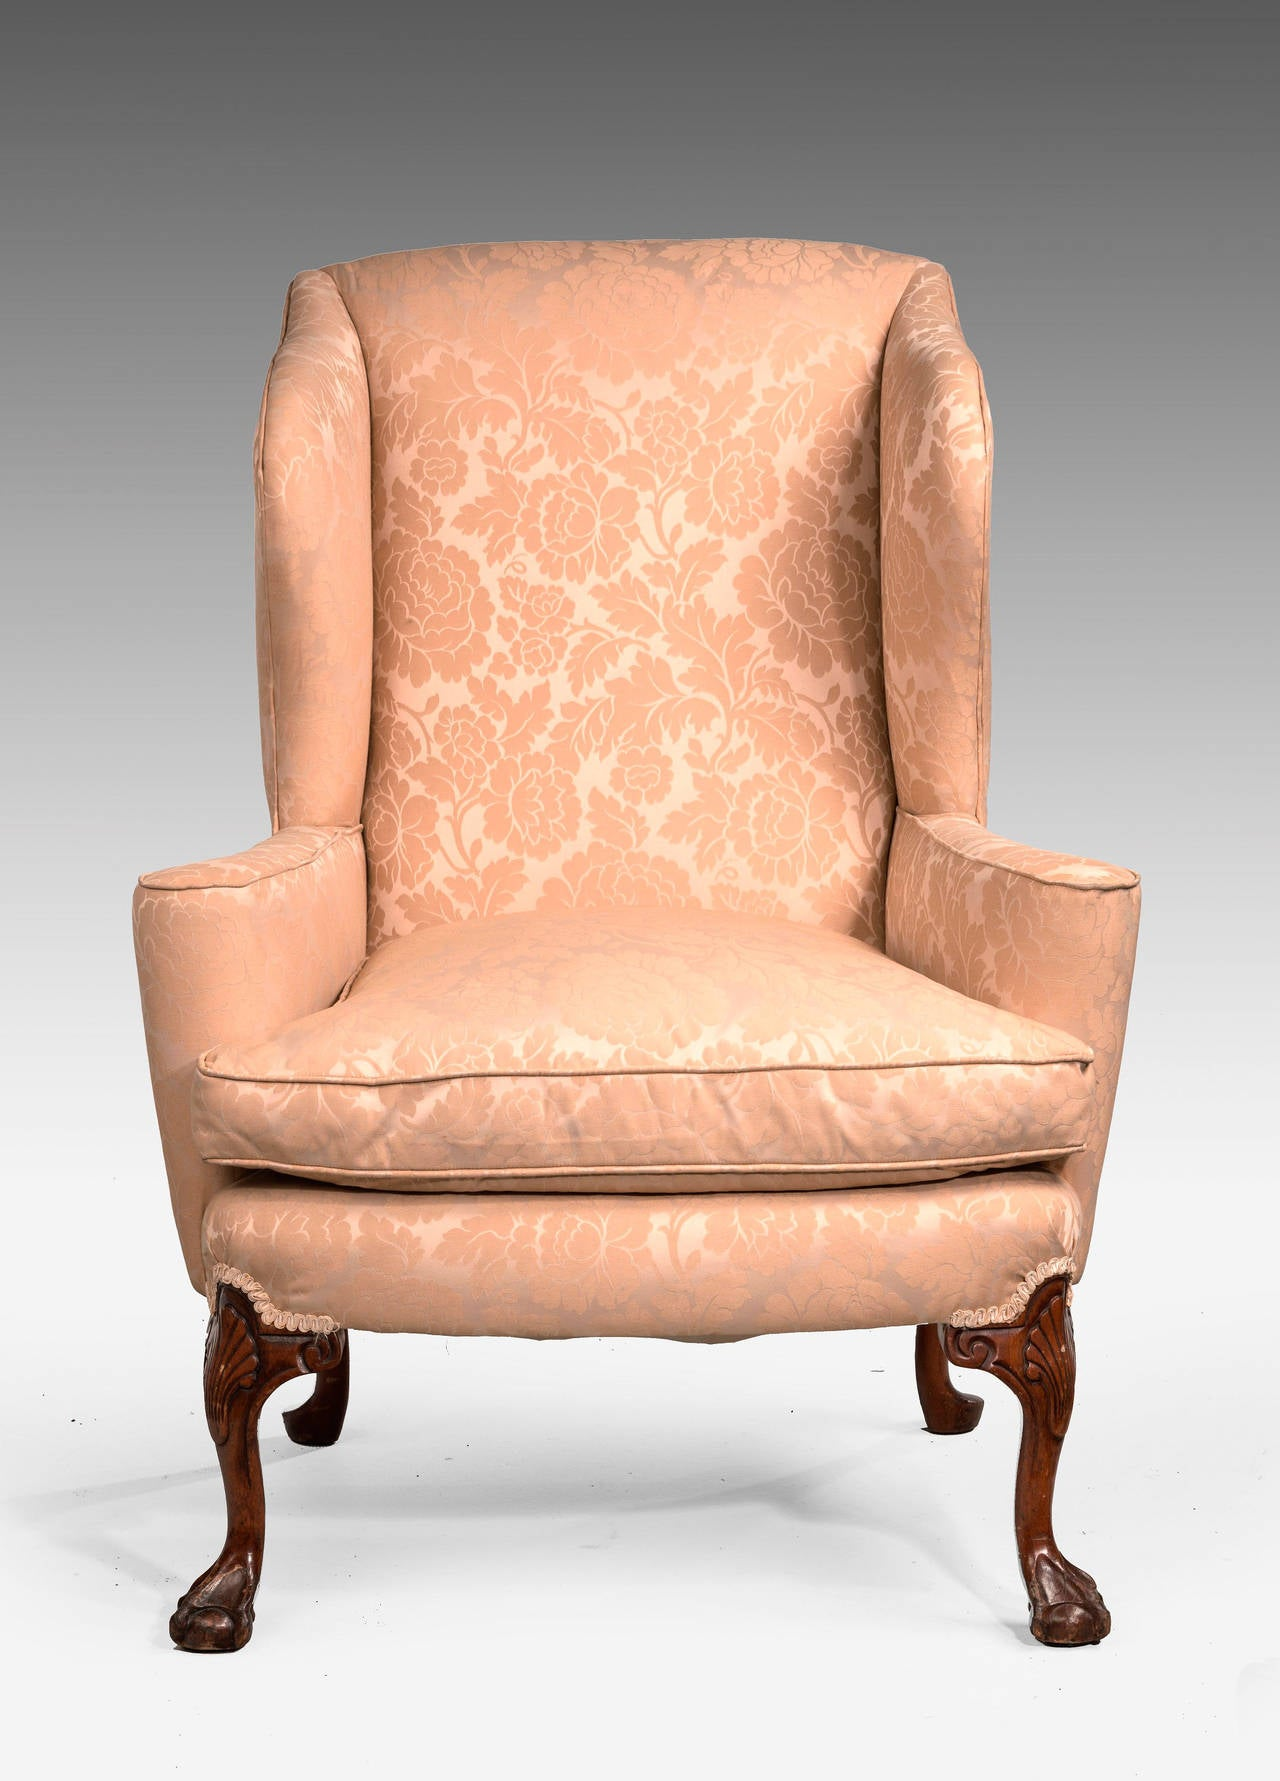 A walnut-framed wing chair of George II design. The cabriole front support with shell and leaf carving over claw ball feet. Late 20th century. Excellent quality upholstery but not newly covered.  An 18th or 19th century wing chair is an easy chair